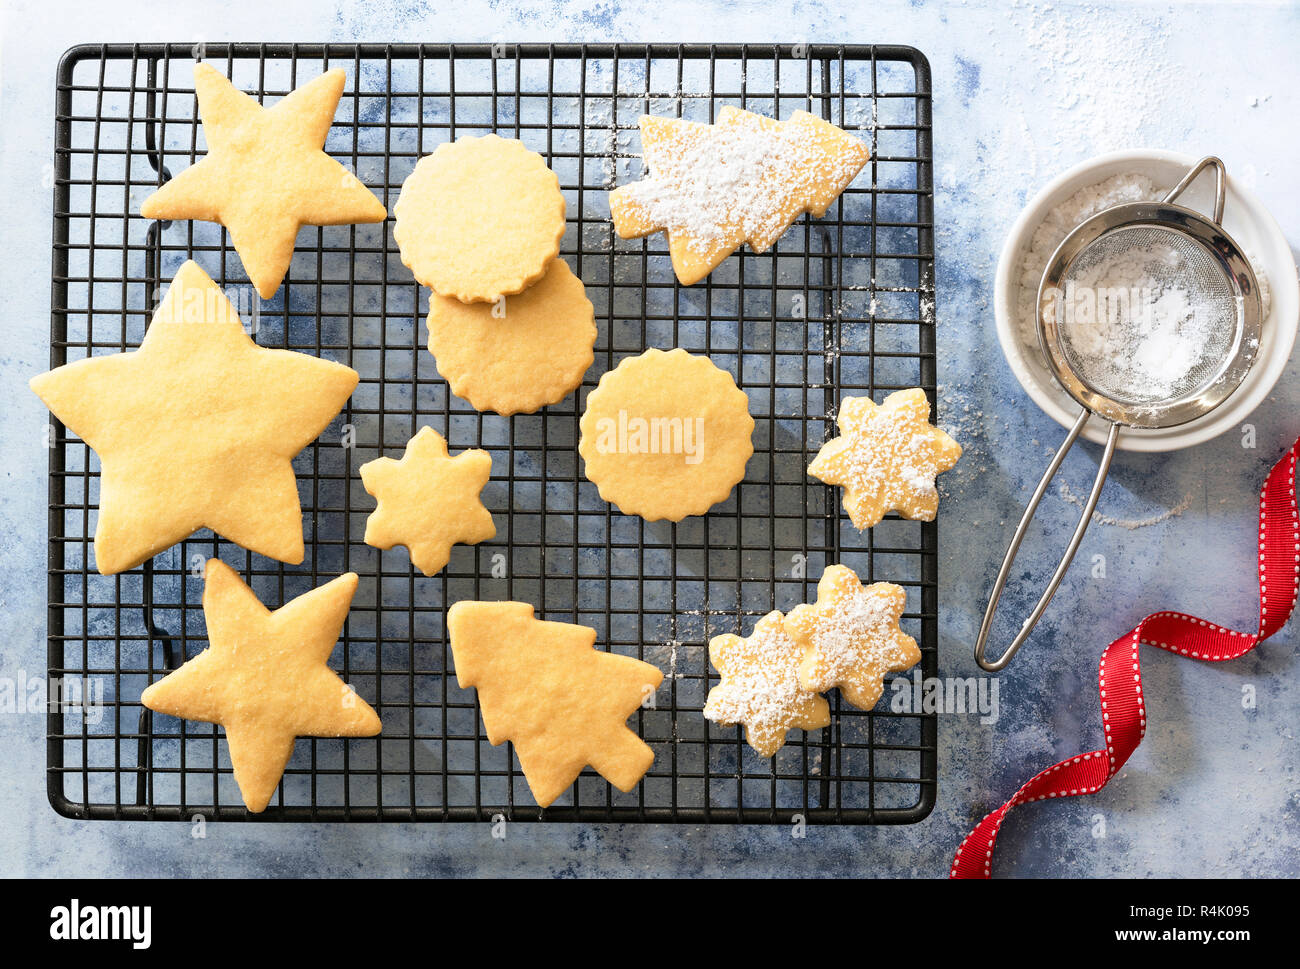 Different Shaped Christmas Shortbread Biscuits Partially Covered